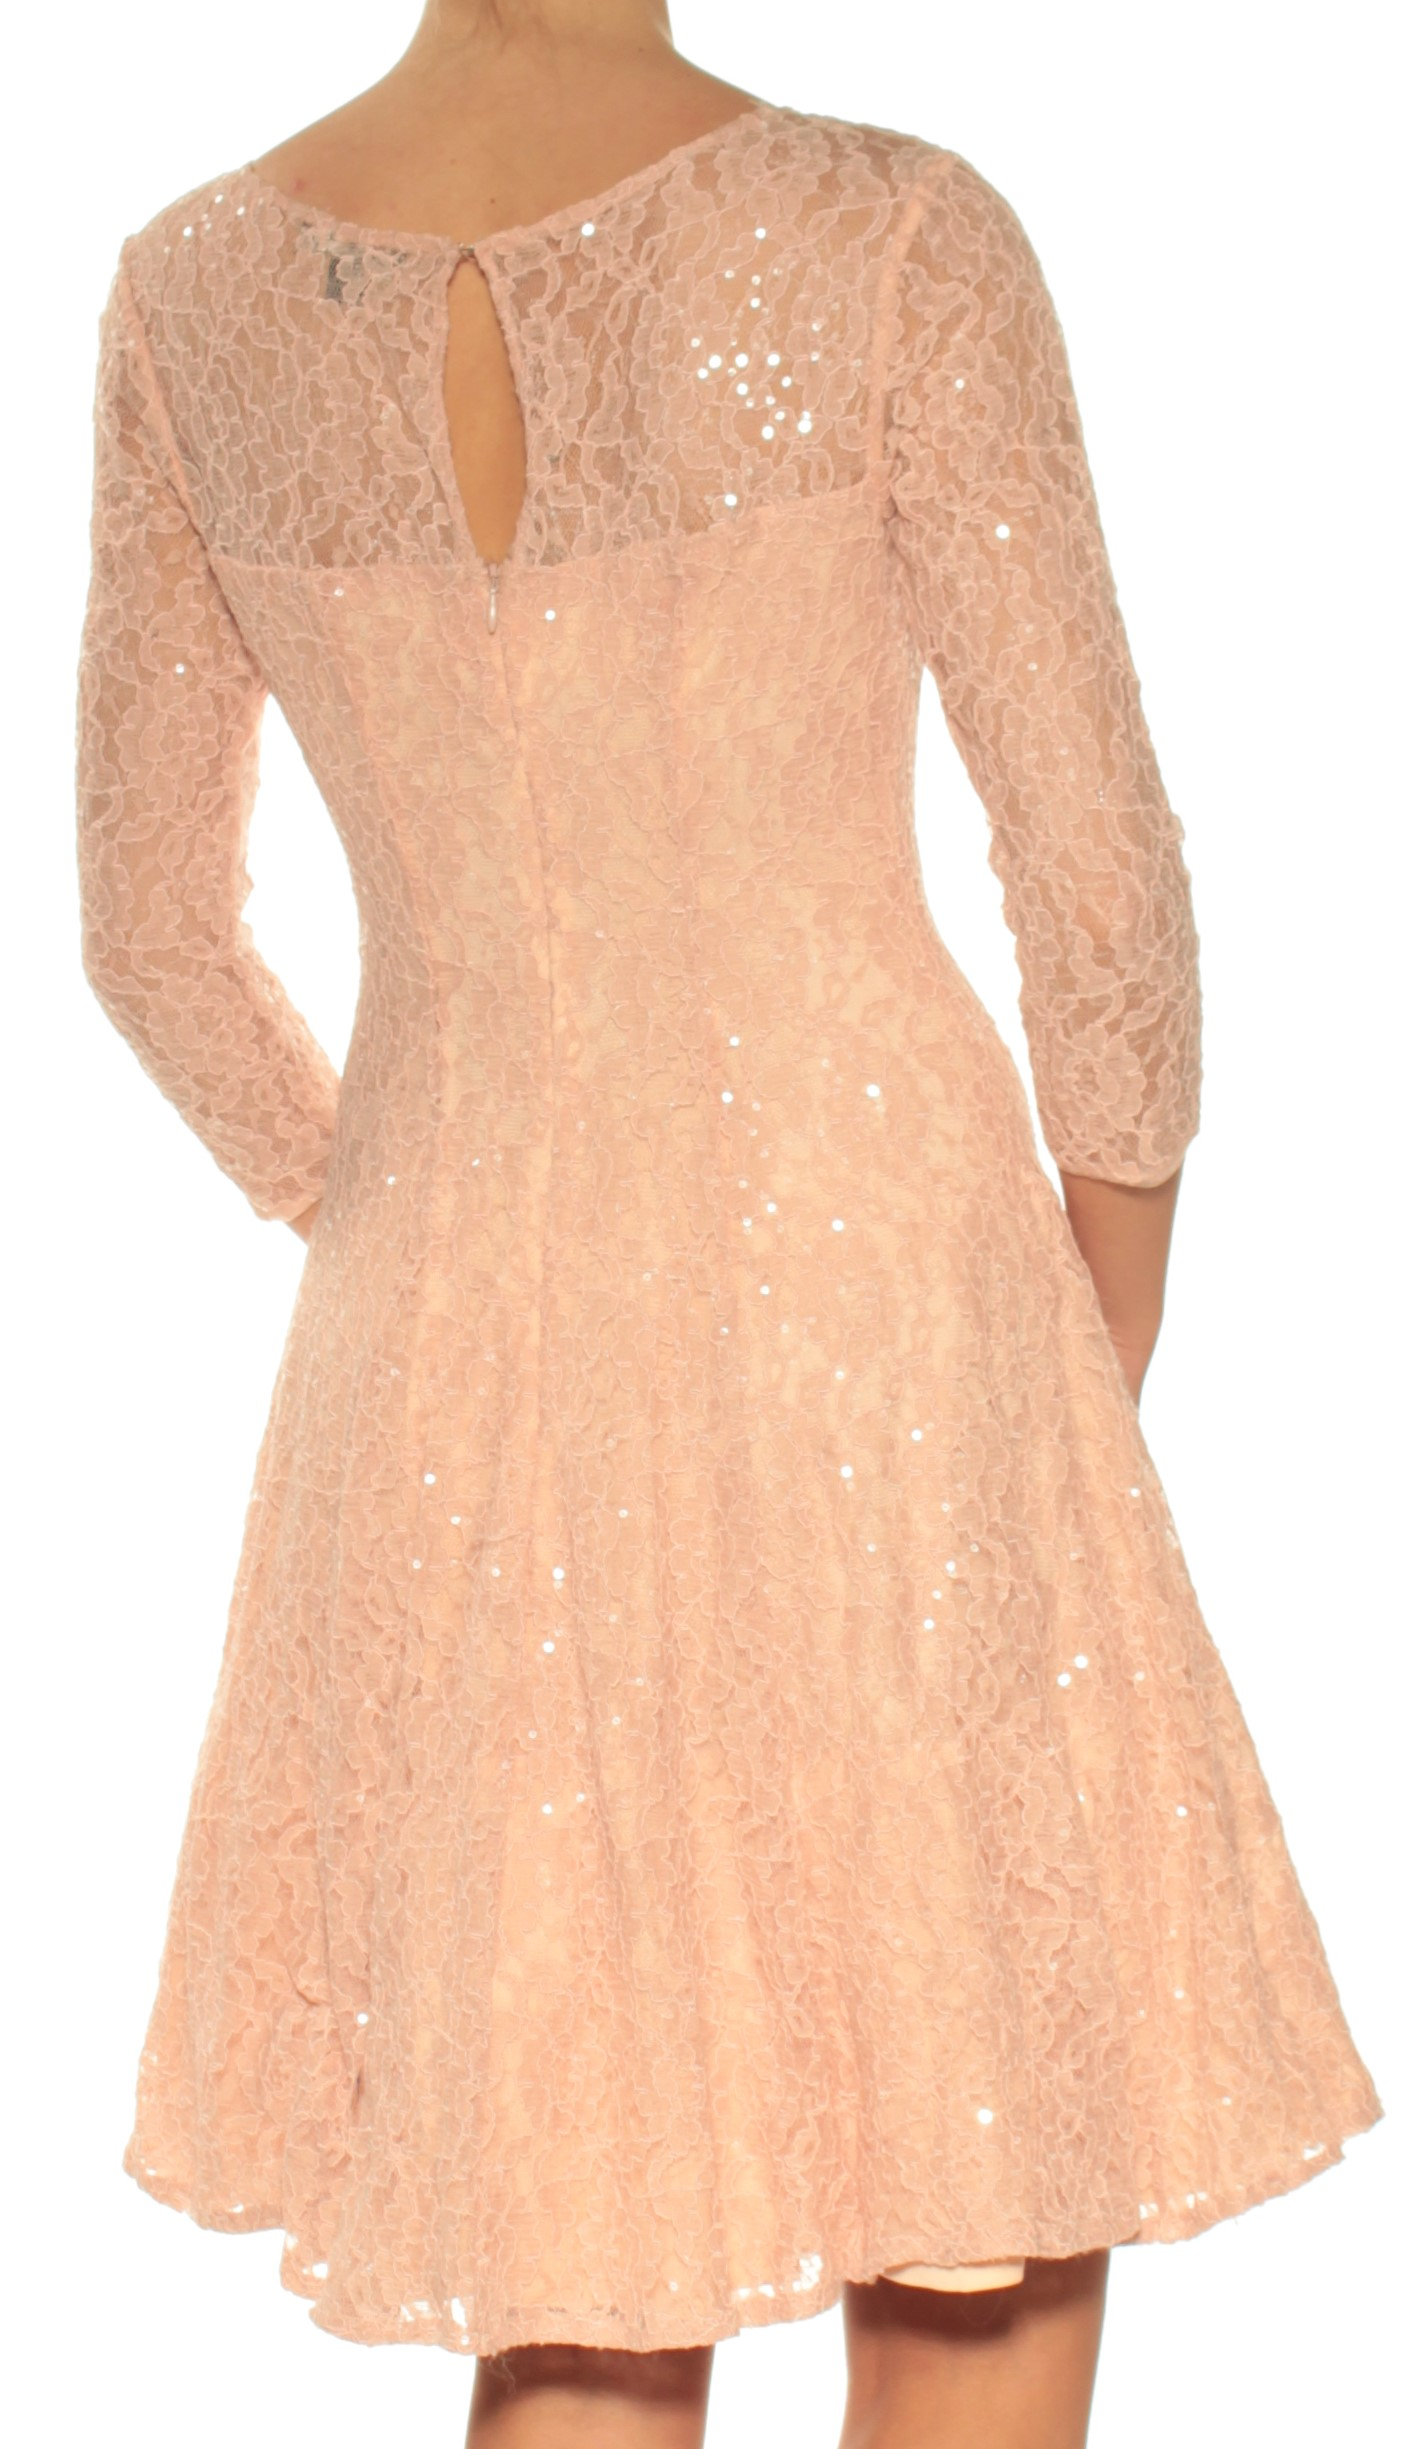 a958fb5b59 SLNY Womens New 1320 Pink Lace Sequined 3 4 Sleeve Fit + Flare Dress ...